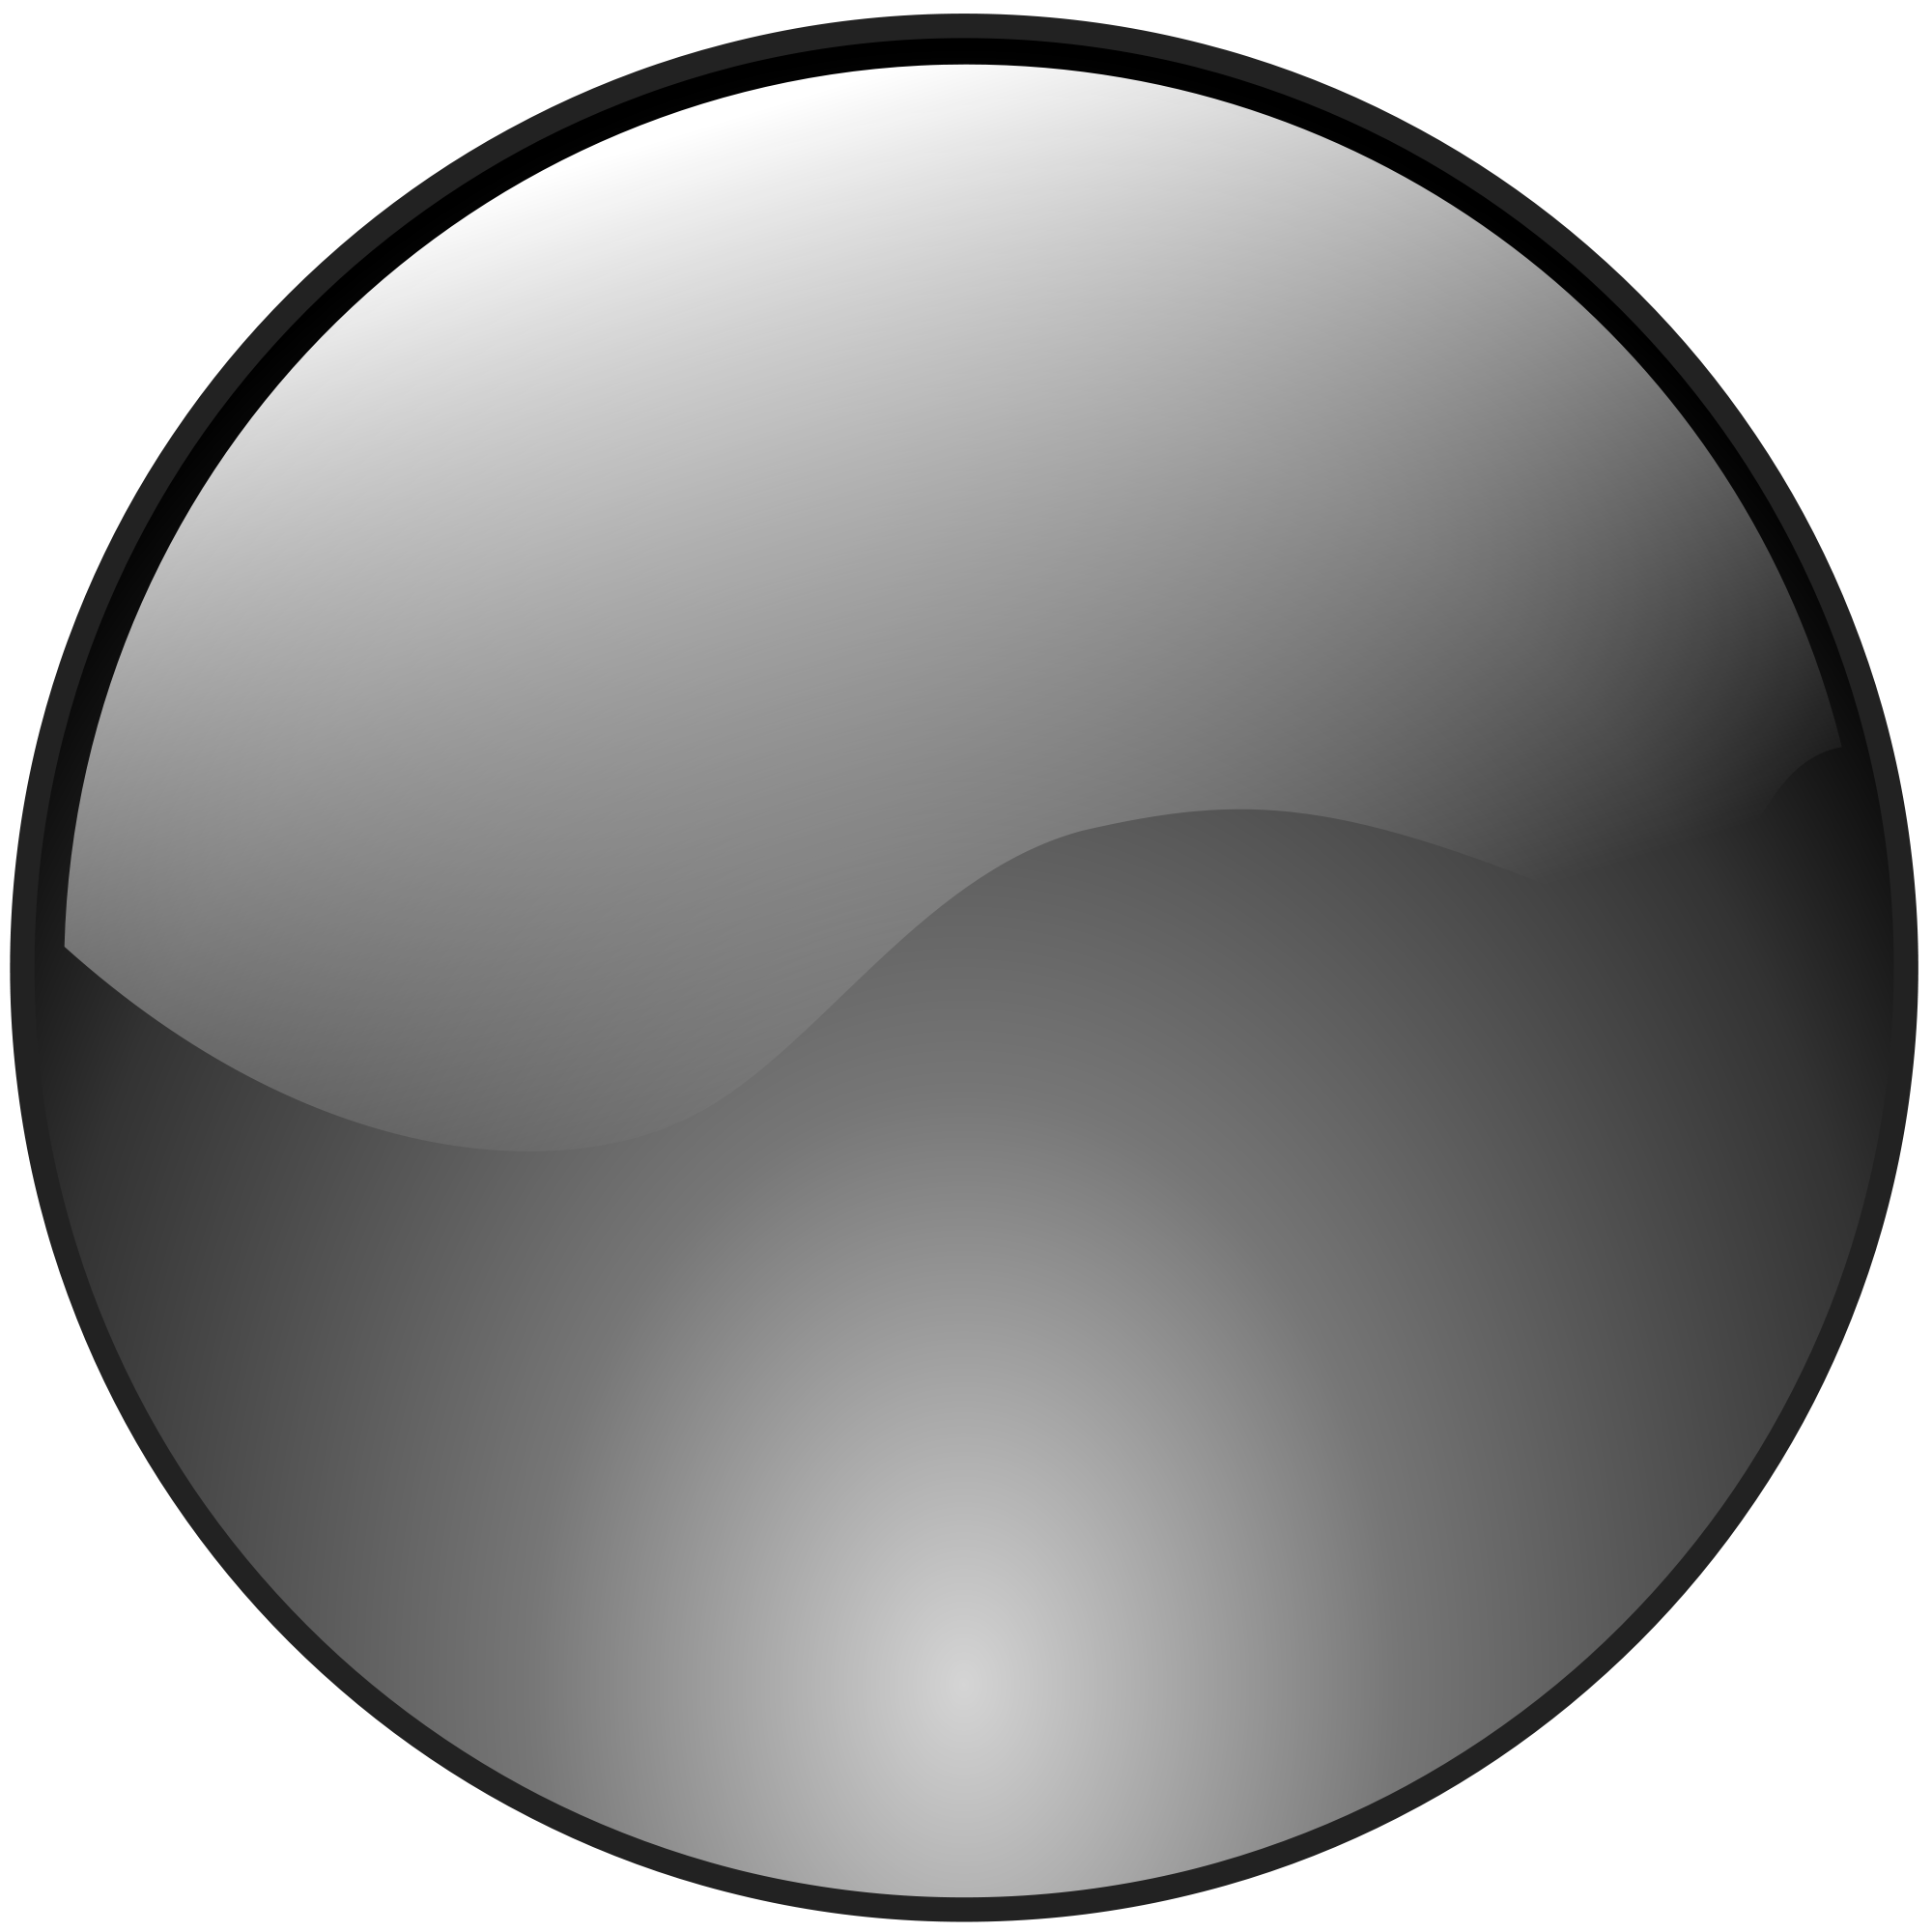 Black button png. File icon svg wikimedia